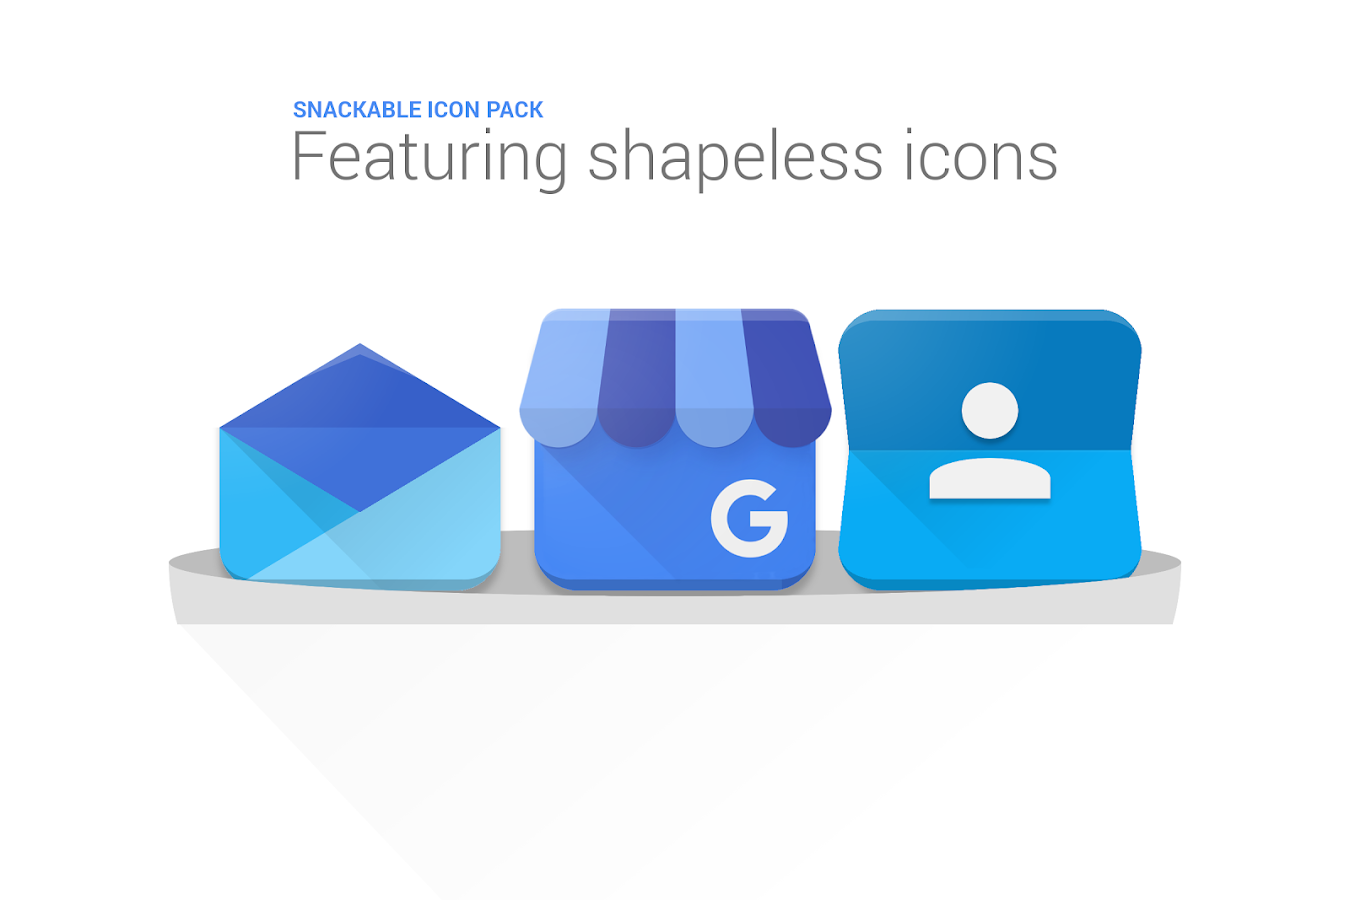 Snackable Icon Pack Screenshot 6